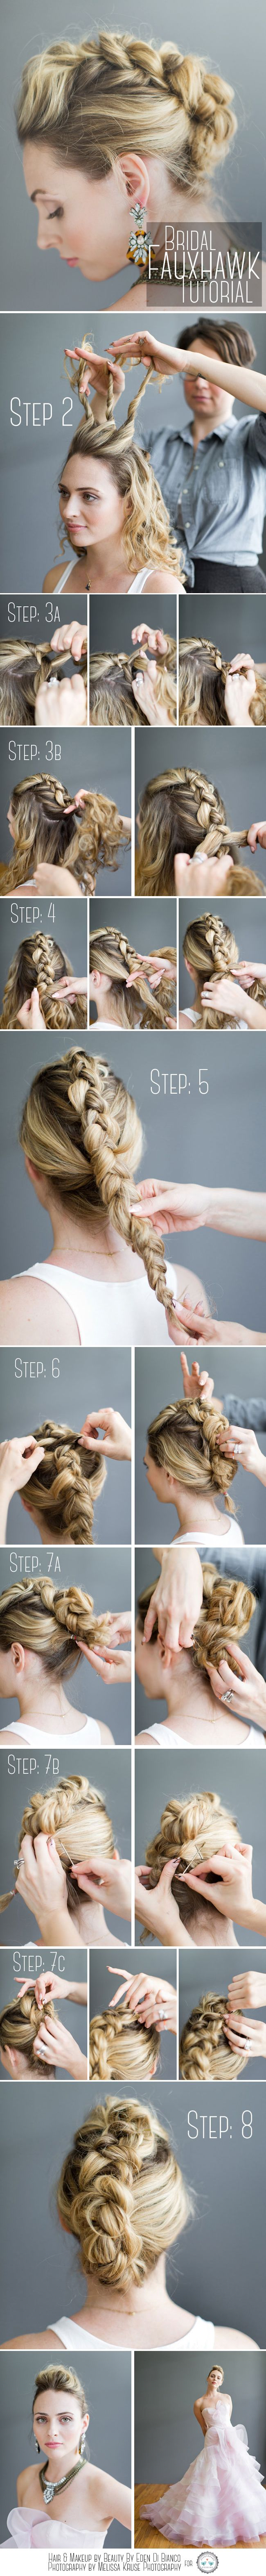 Bridal fauxhawk braid tutorial wedding hair faux hawk